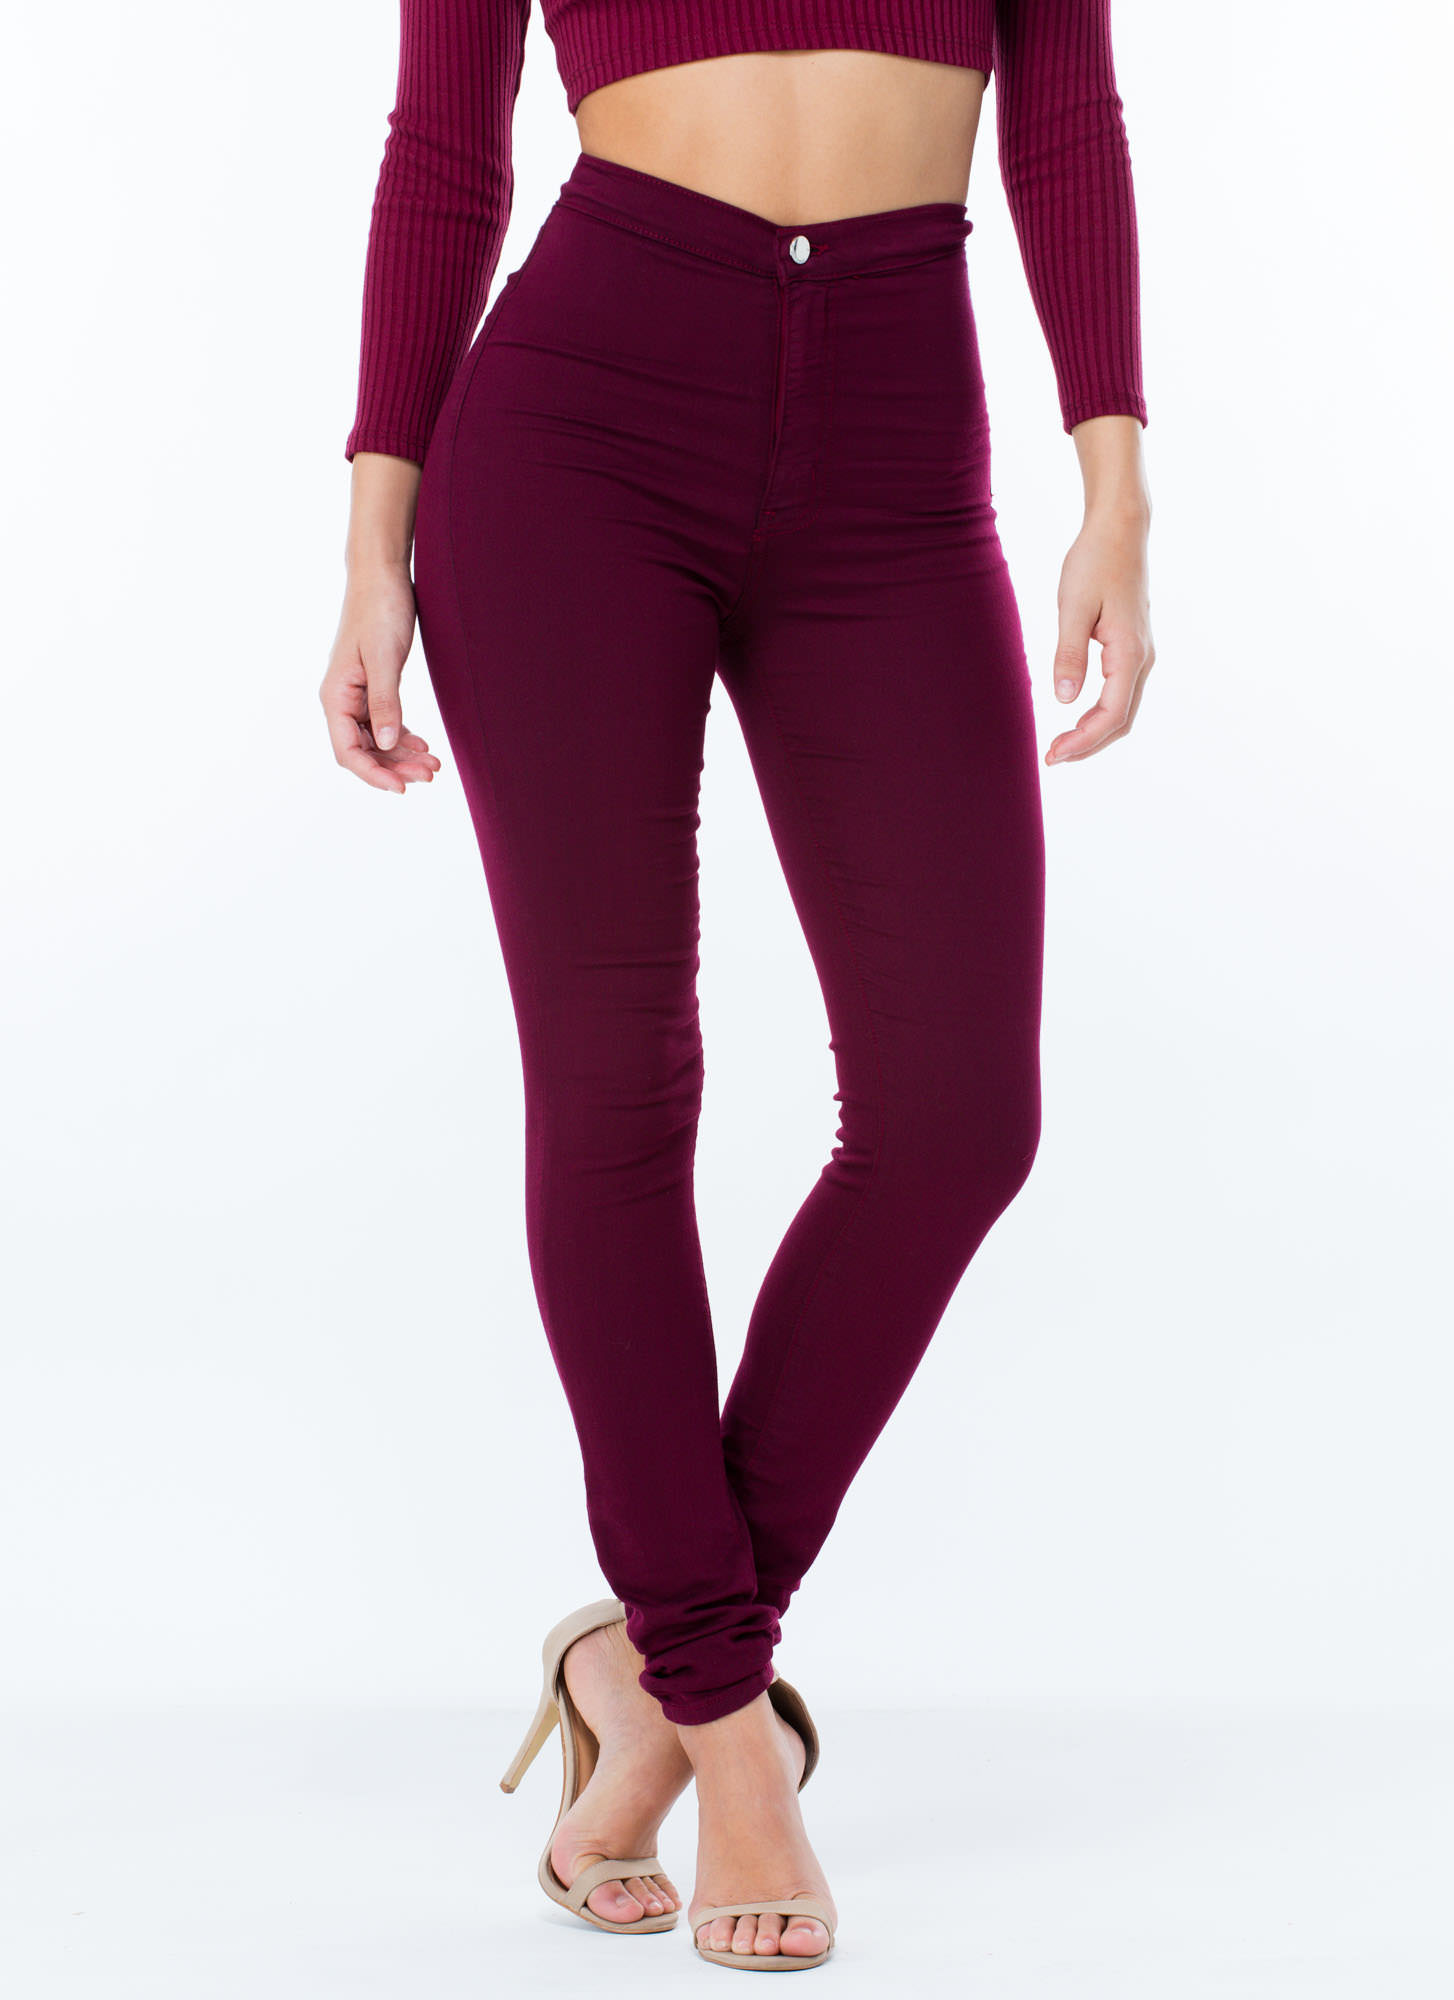 High Waist Skinny Jeggings BLACK BURGUNDY - GoJane.com - Waist Skinny Jeggings BLACK BURGUNDY - GoJane.com